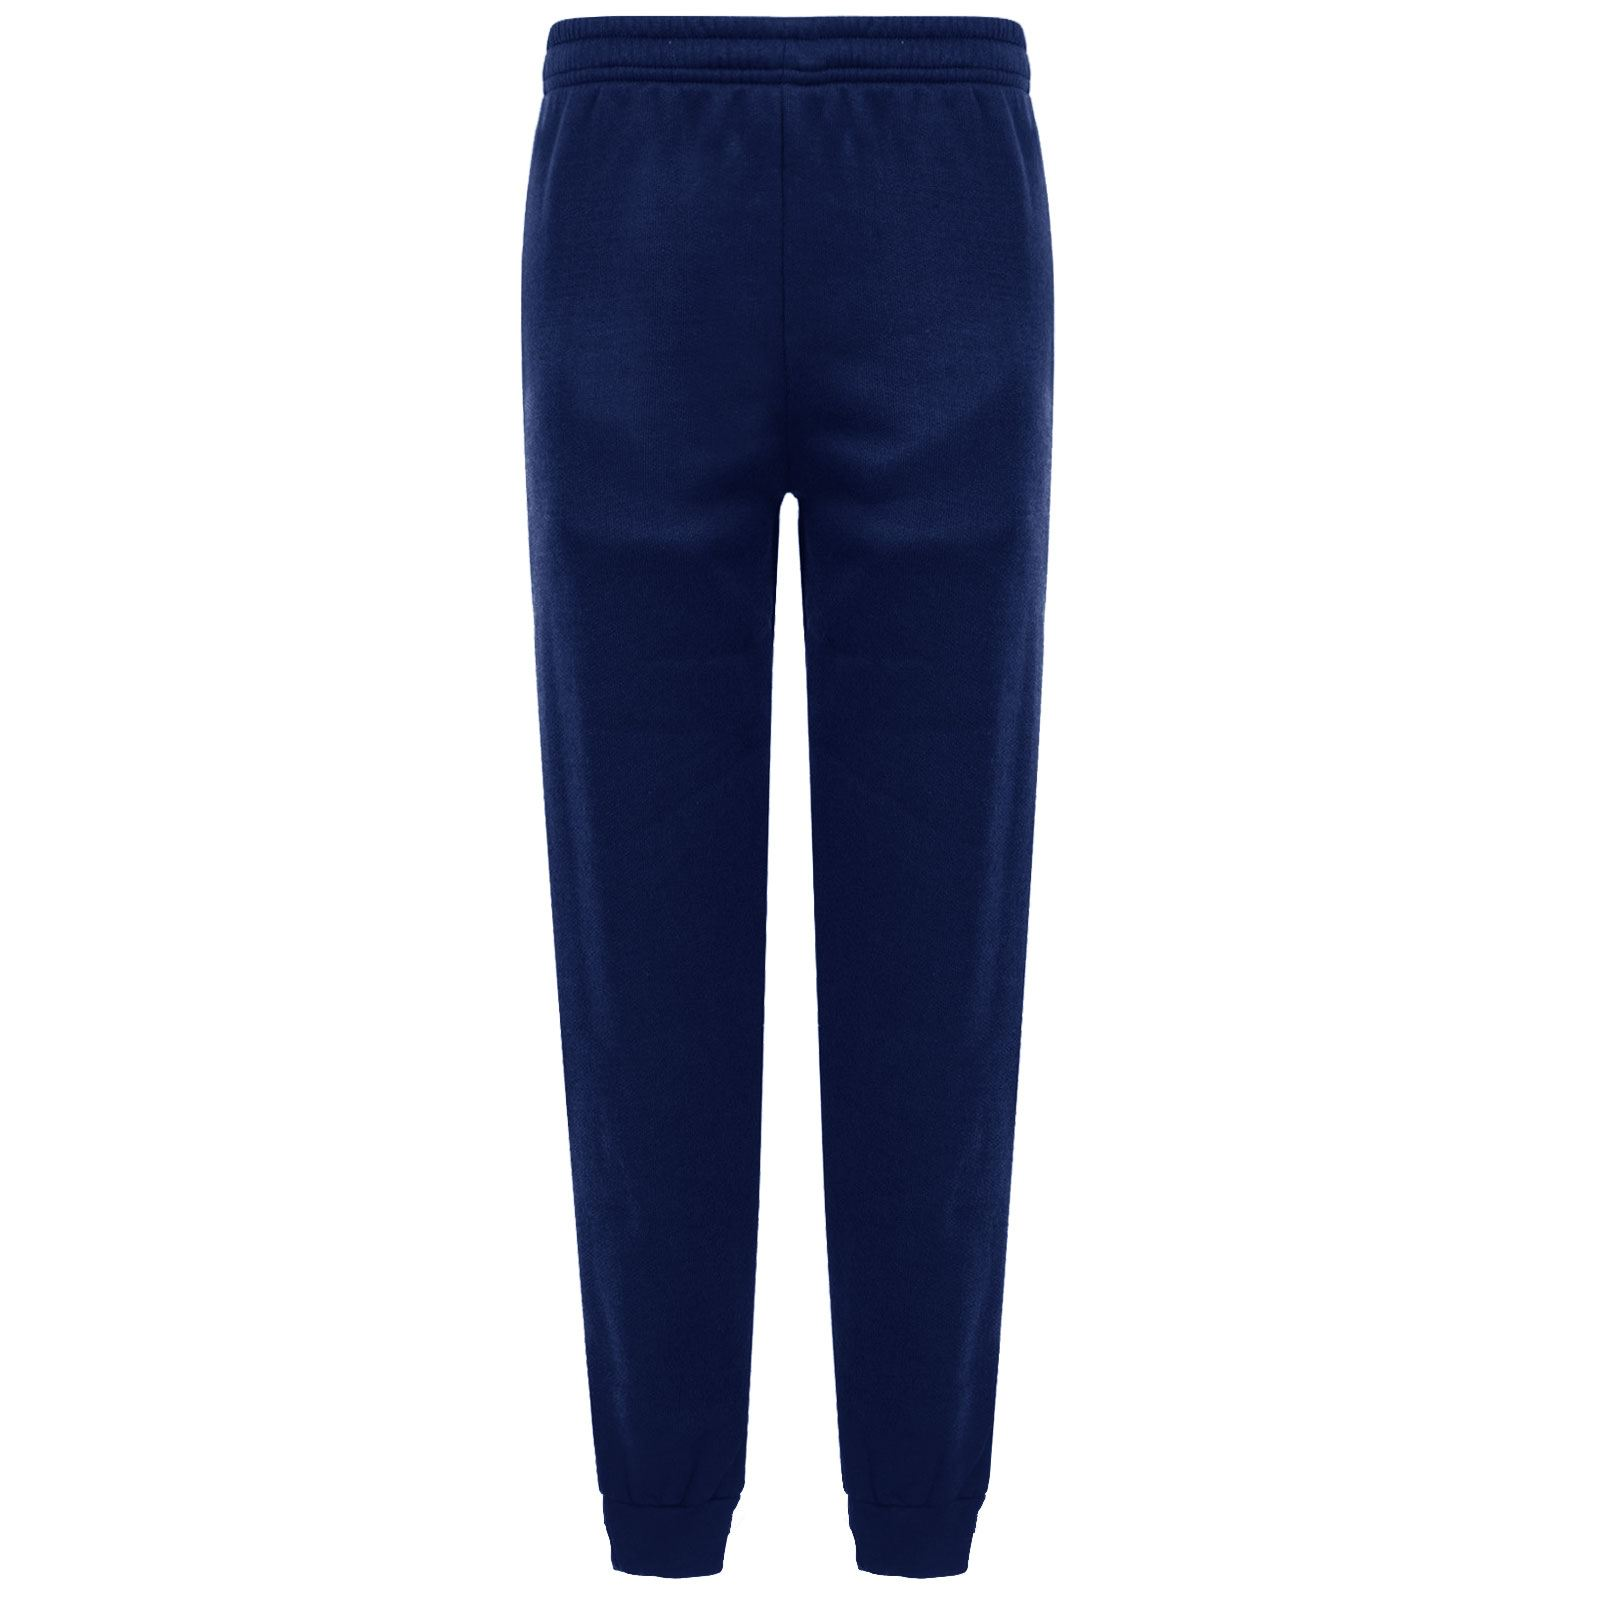 Find great deals on eBay for boys jogging pants. Shop with confidence.